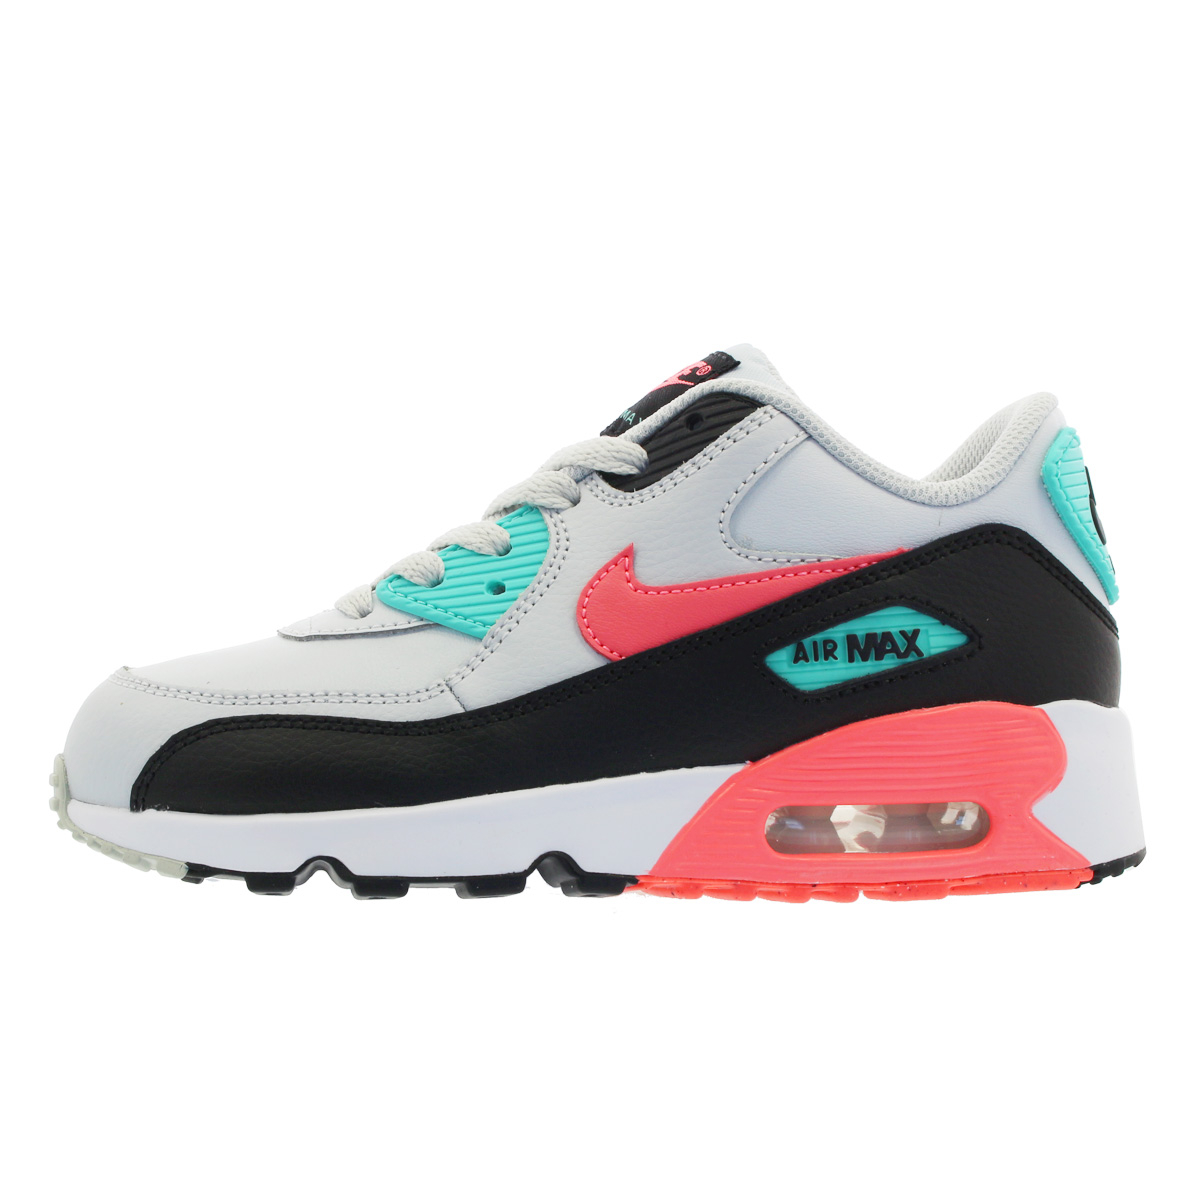 13c8e19823 ... NIKE AIR MAX 90 LTR PS Kie Ney AMAX 90 leather PS PURE PLATINUM/LAVA ...